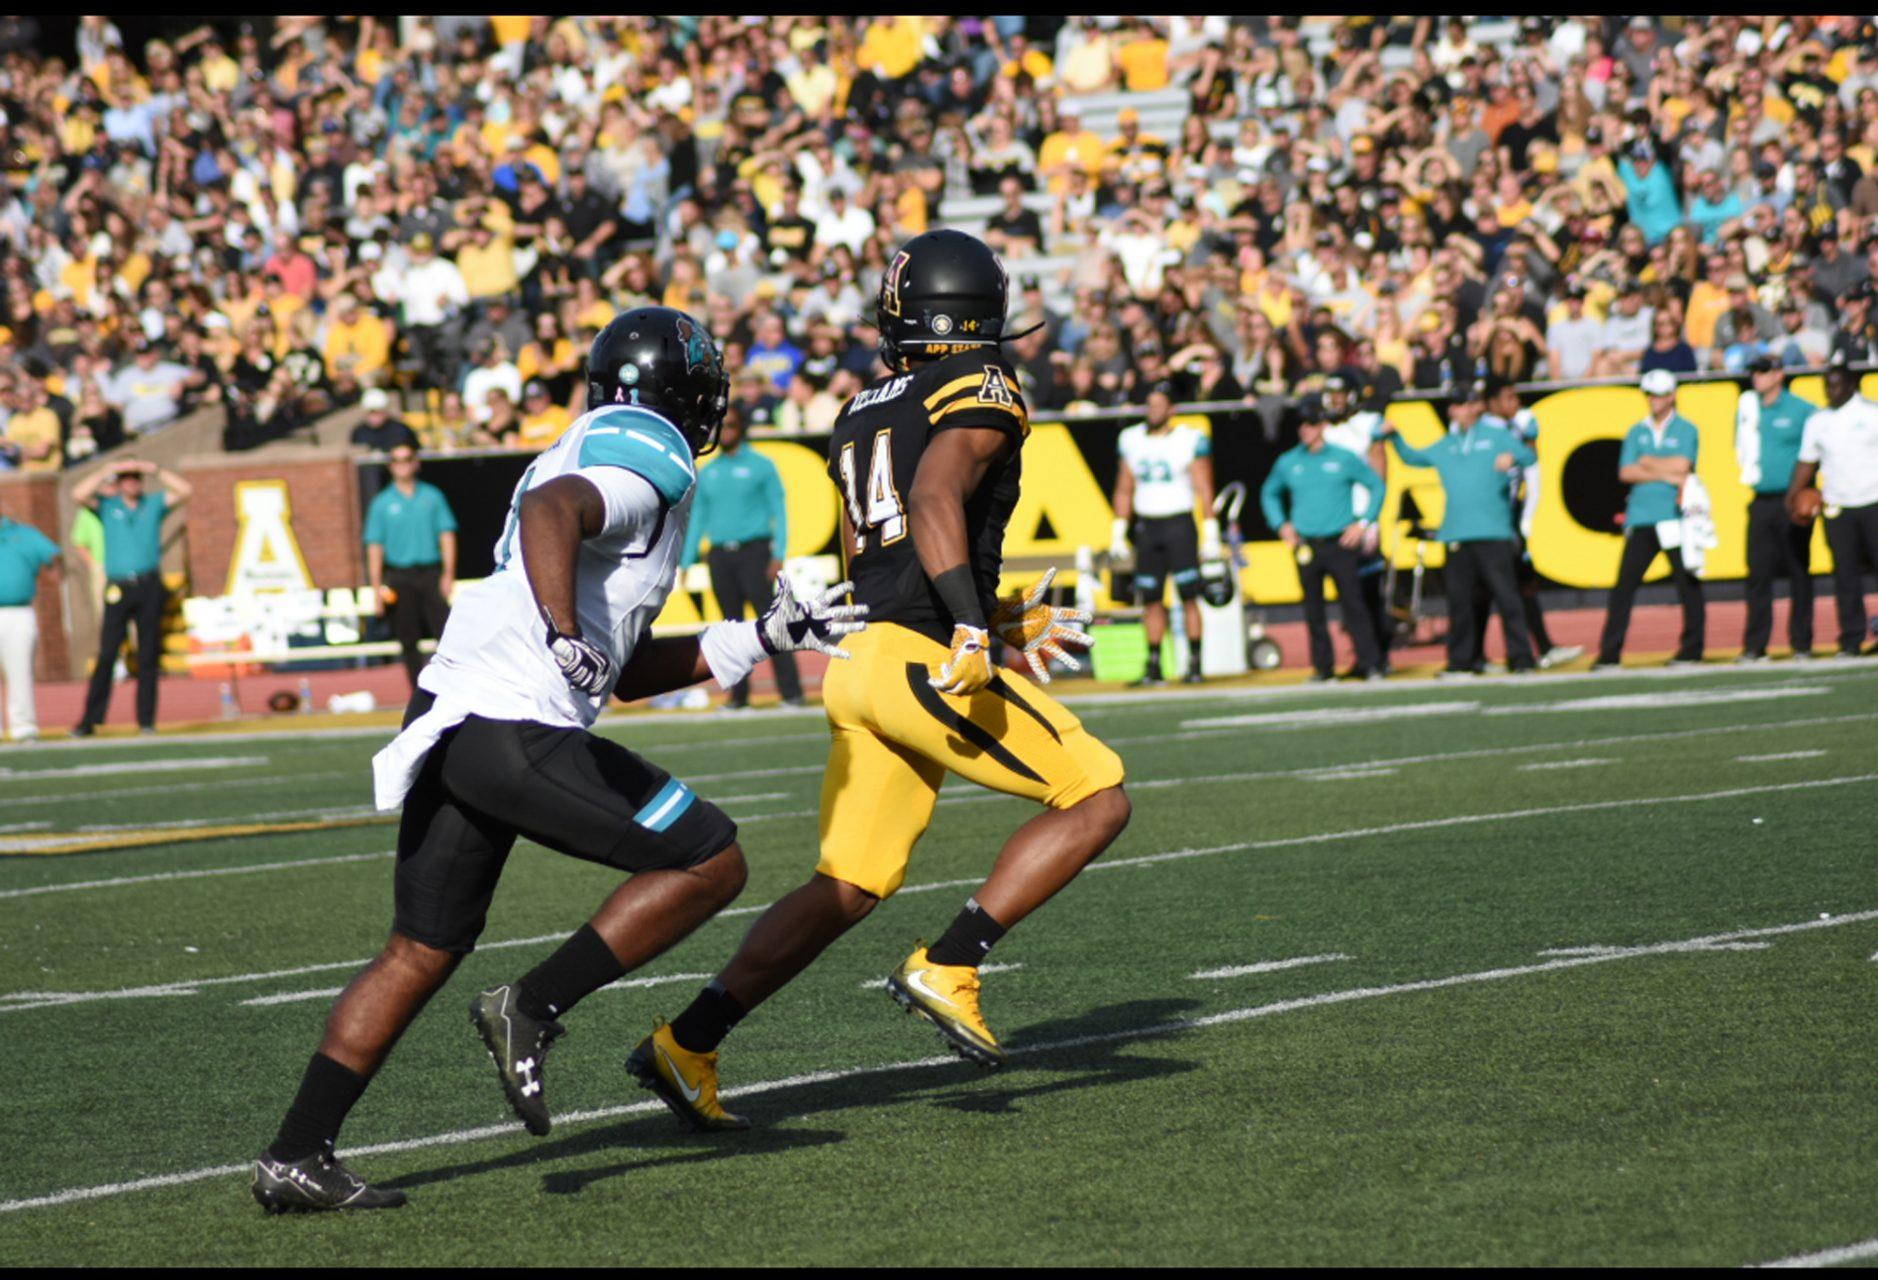 Junior+wide+receiver+Malik+Williams+going+out+for+a+pass+against+Coastal+Carolina.+Williams+has+shown+improvement+each+of+his+three+seasons+as+a+Mountaineer.